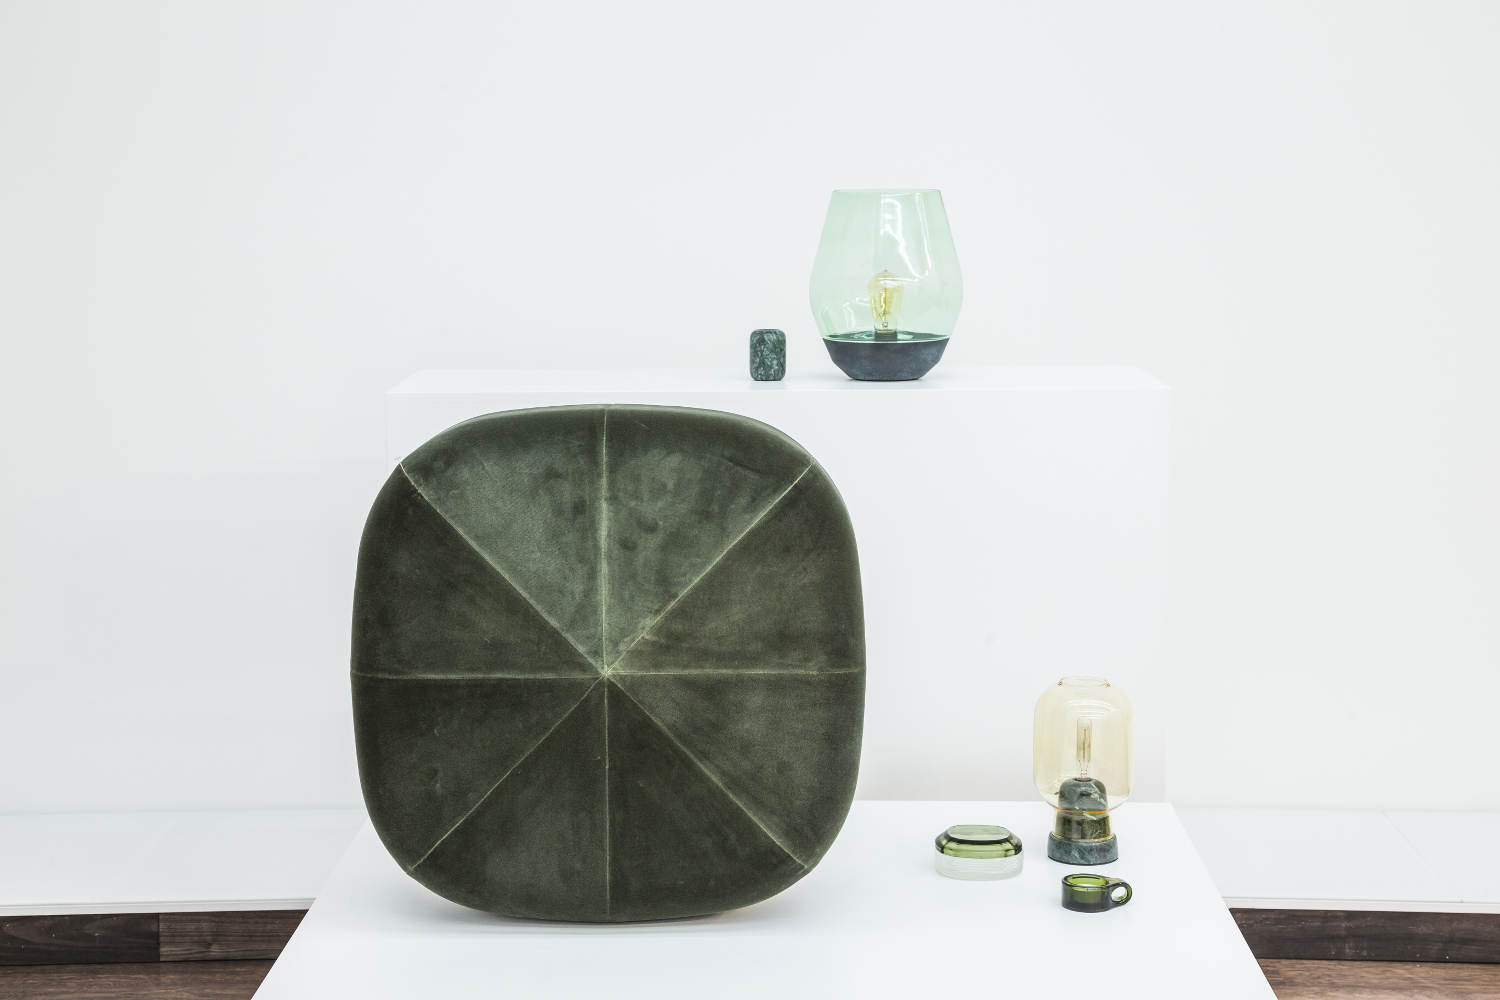 NEW WORKS  products shown:  Balance Candle Holder - Indian Green Marble, Medium // Design: Kristina Kjær  Bowl Table Lamp - Verdigrised Copper w. Light Green Glass // Design: Knut Bendik Humlevik      Photos by: OUT OF THE DARK